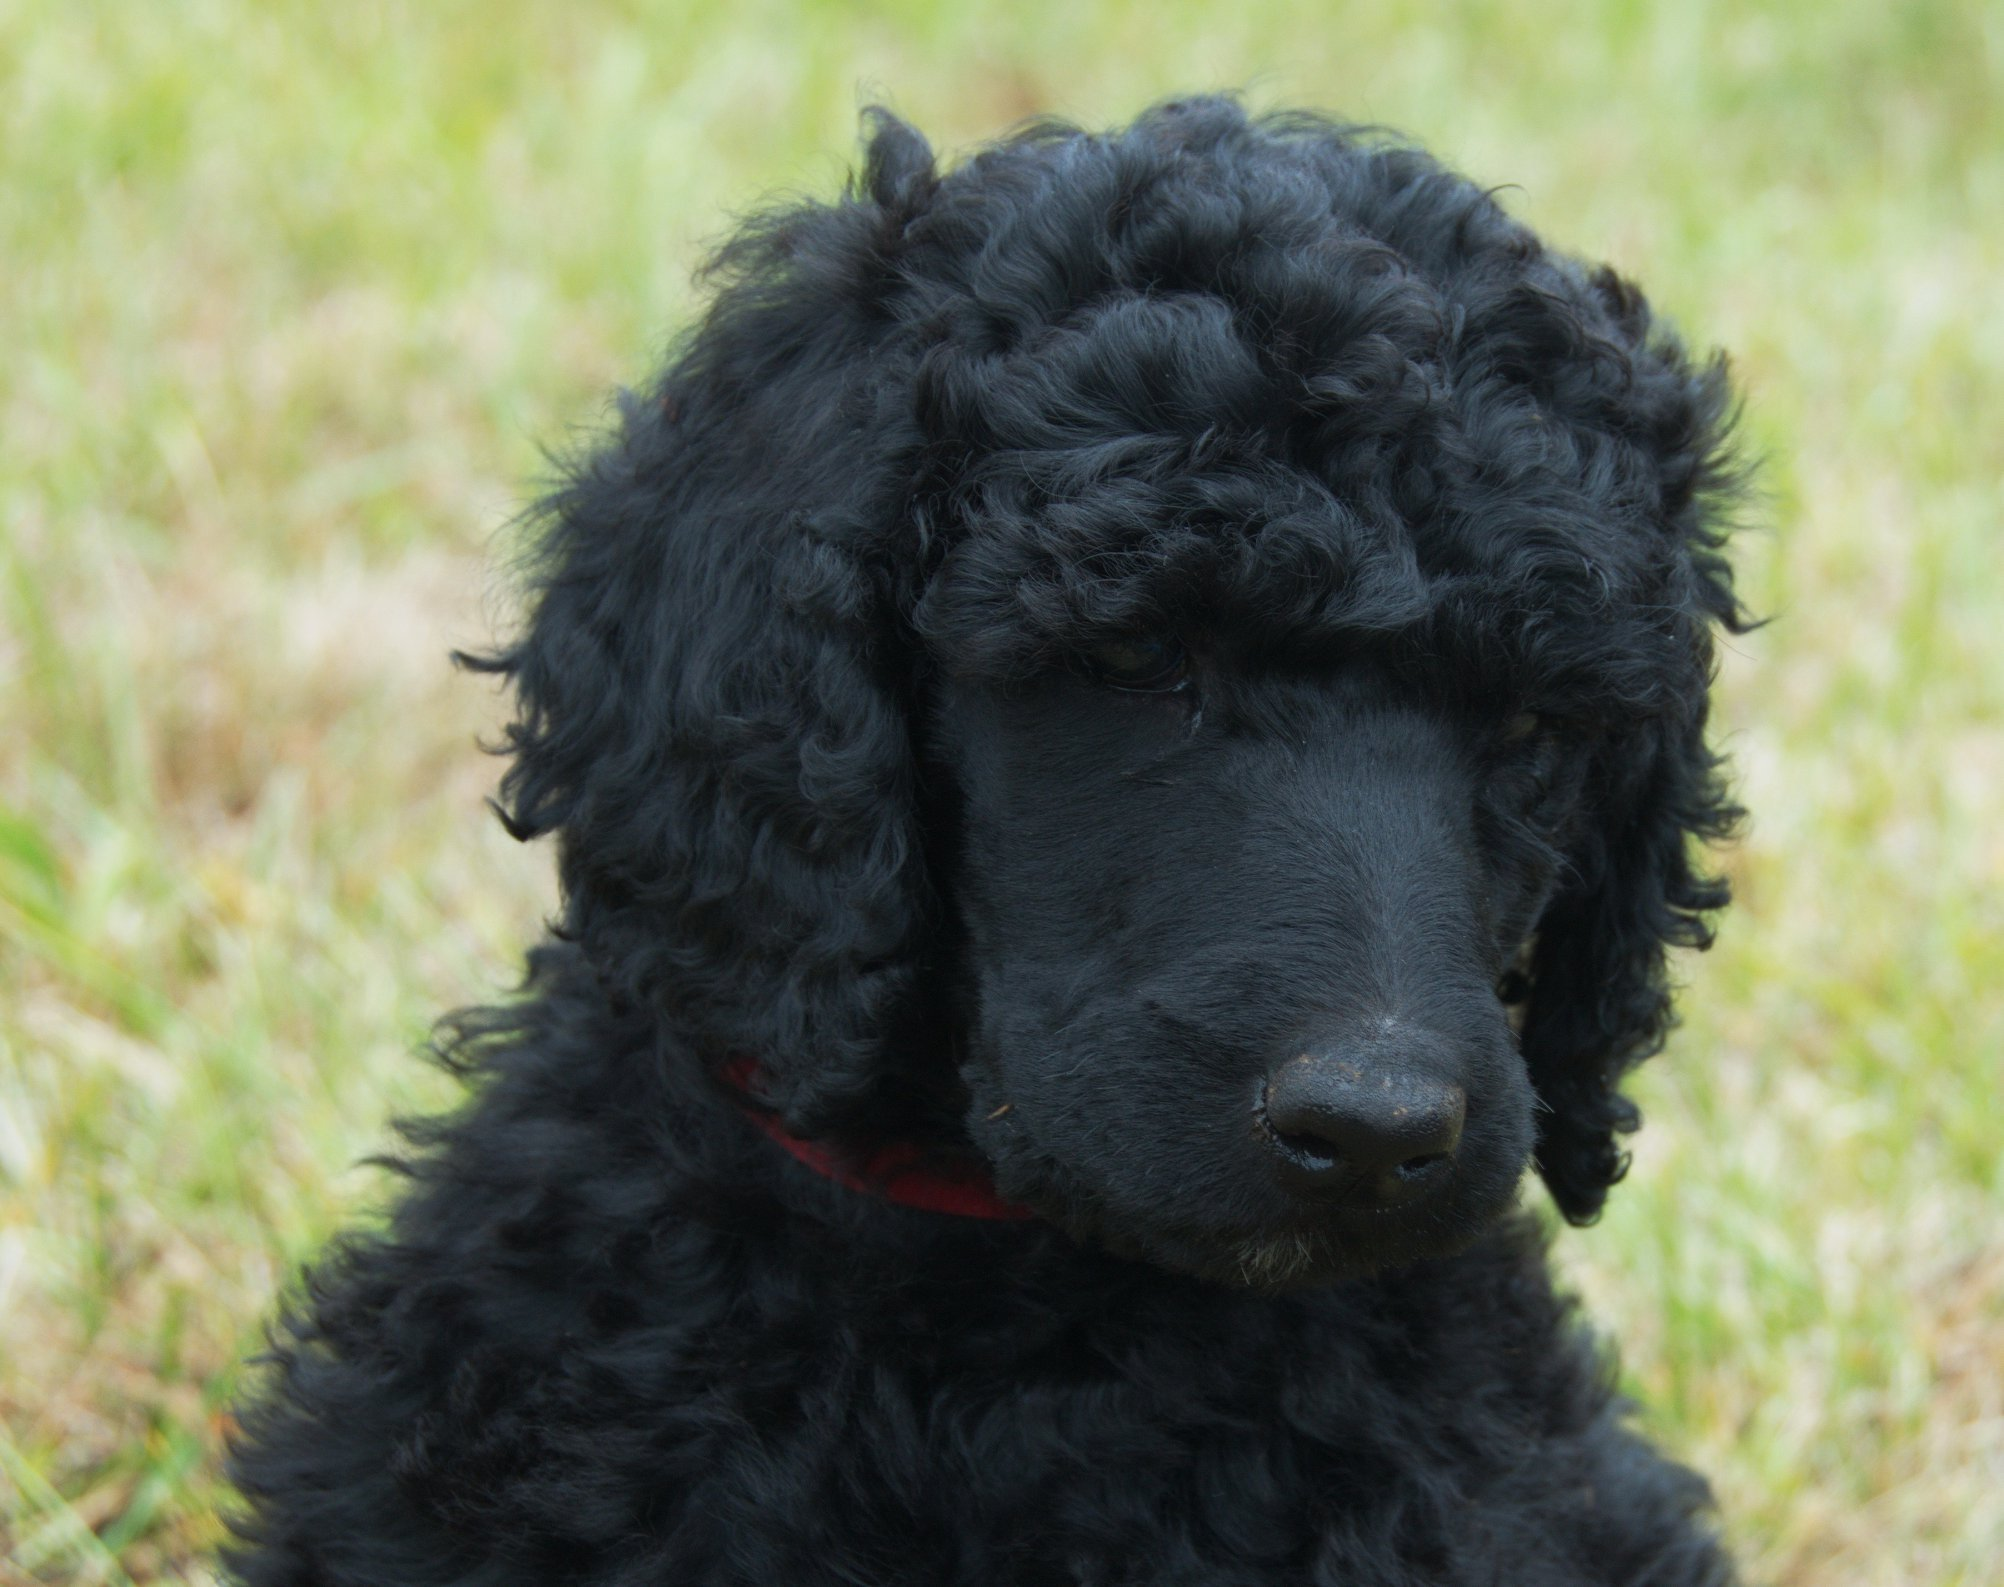 Rosebud – a female Poodle puppy for sale in Clearwater, Florida | VIP  Puppies